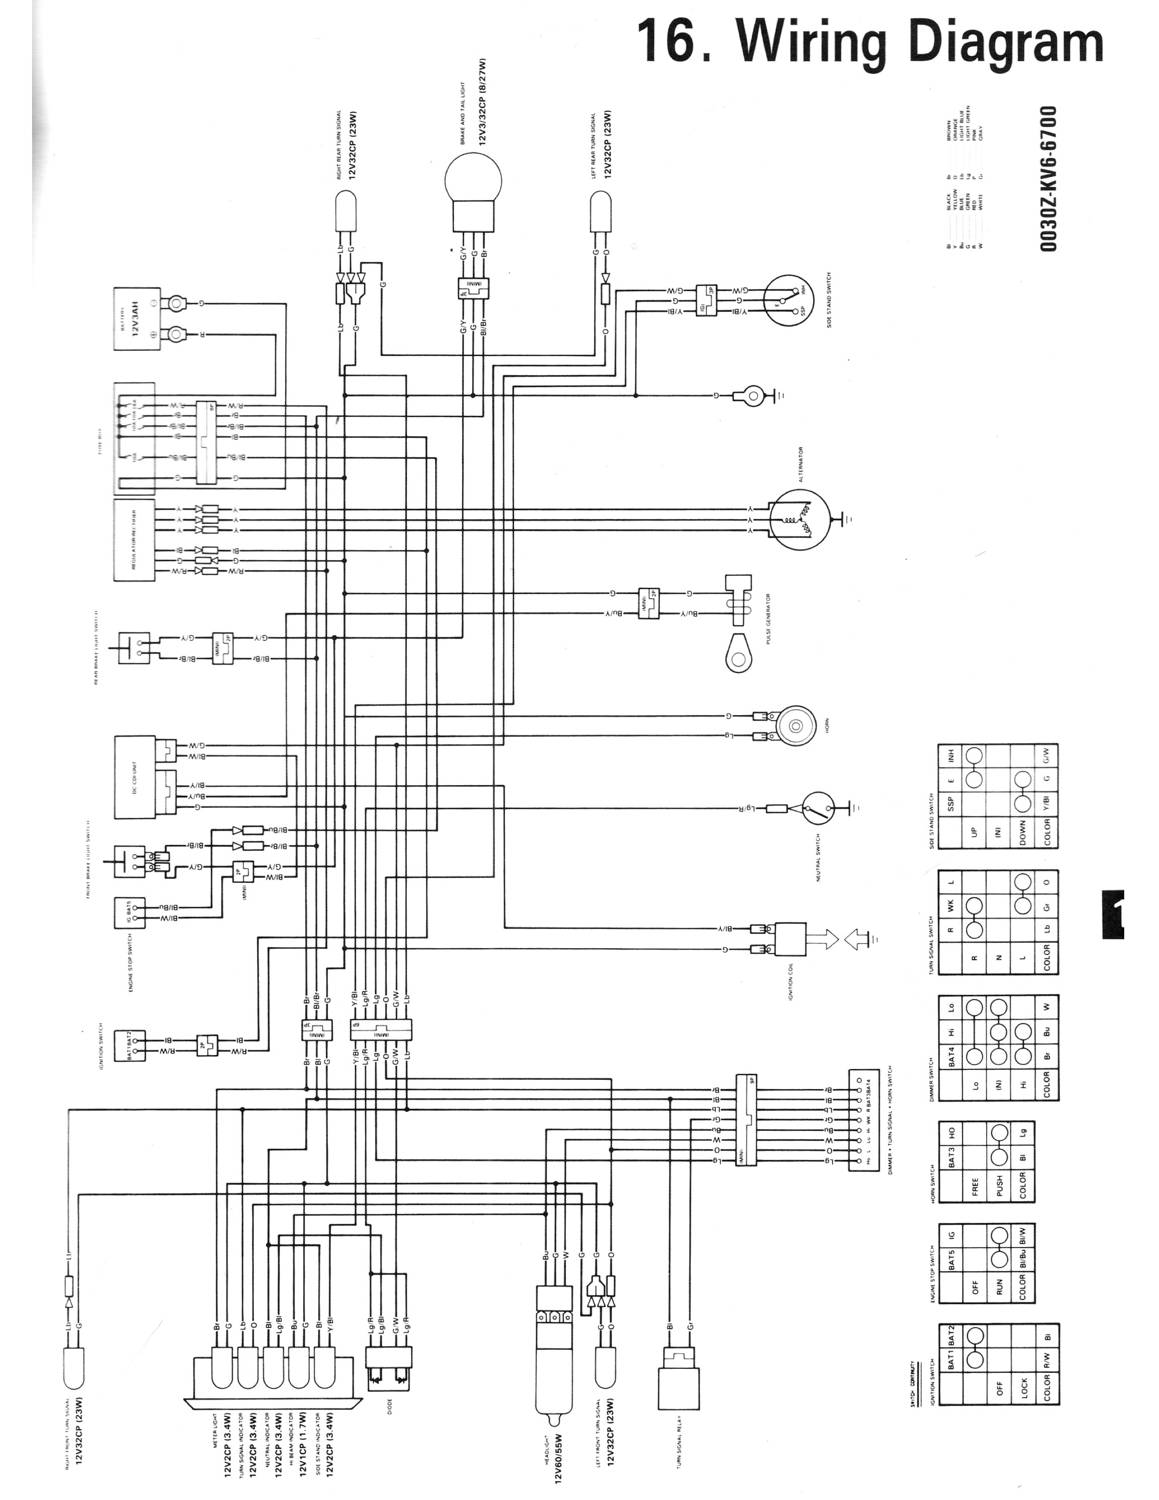 honda reflex wiring diagram  honda  free engine image for